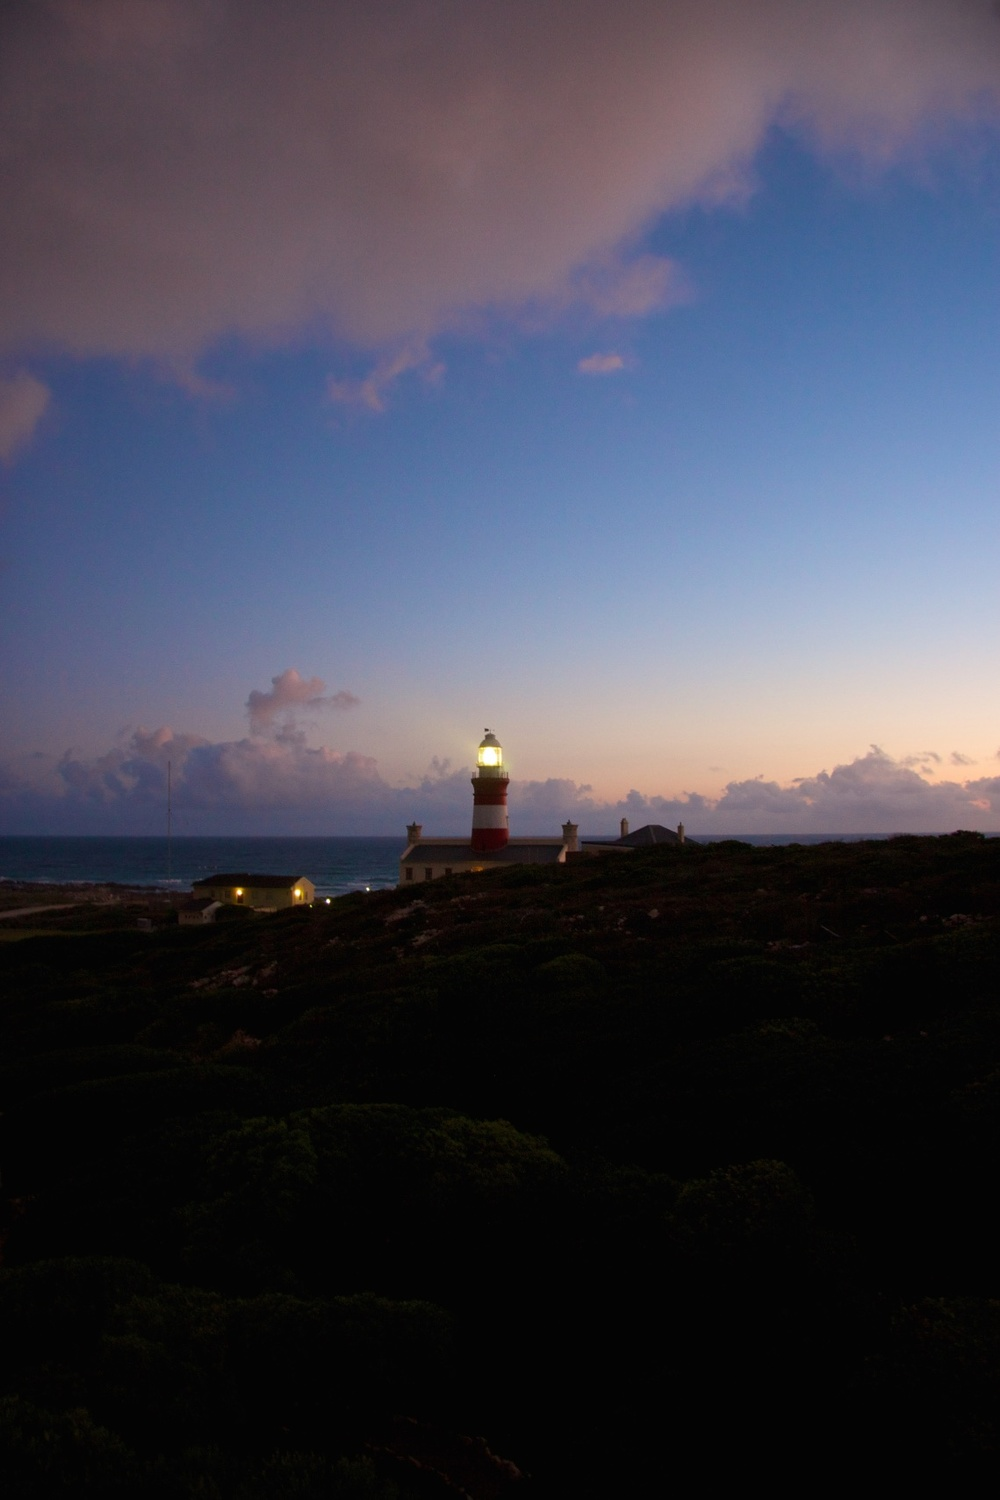 The Lighthouse at the End of the World. Cape Agulhas, Africa's southernmost point.